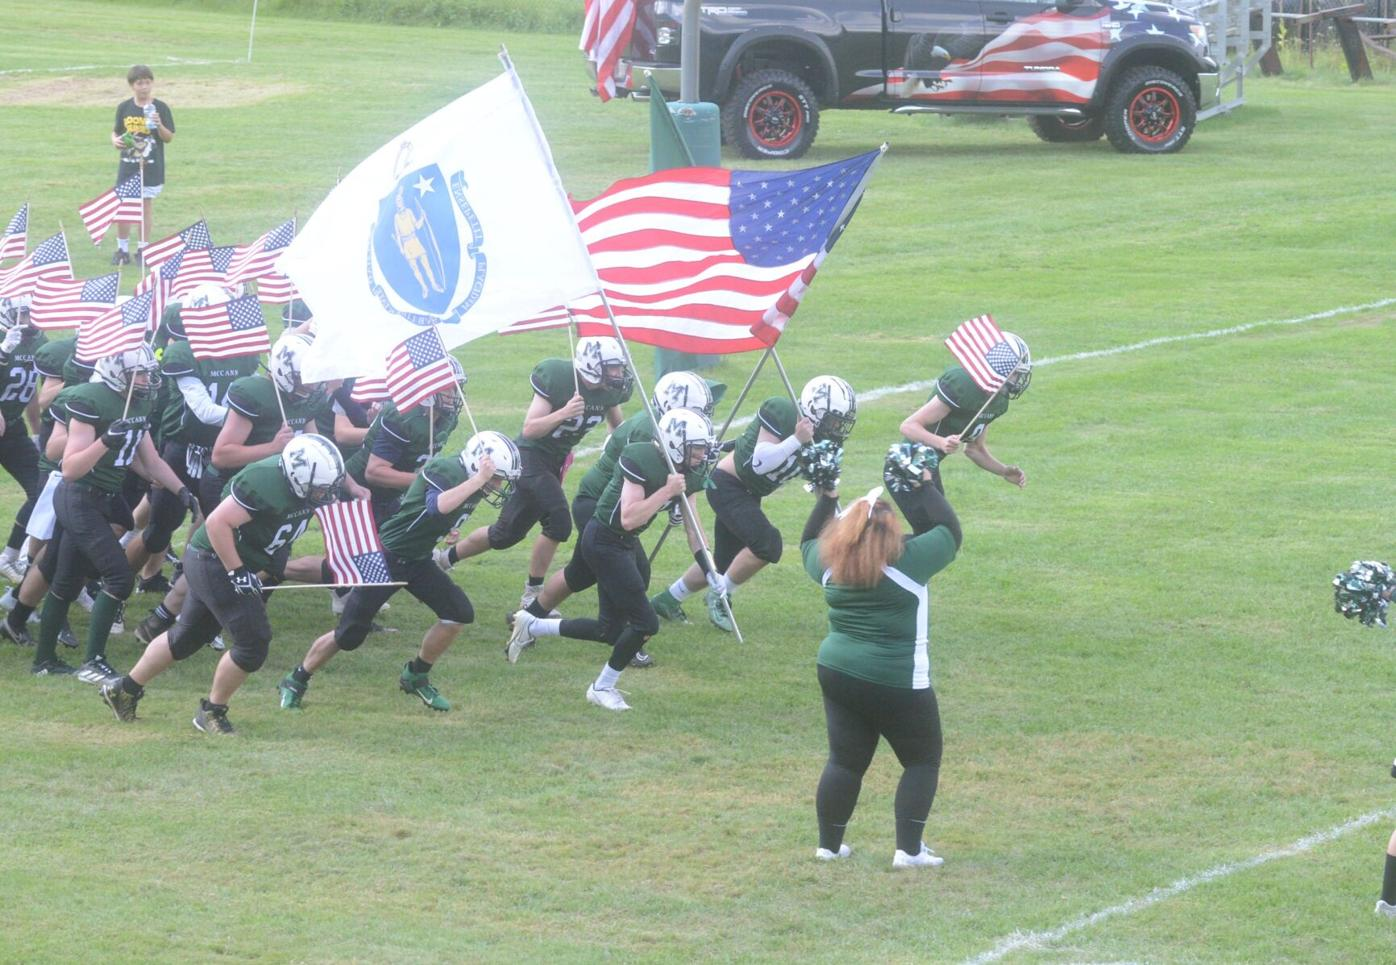 Hornets storm onto field with flags